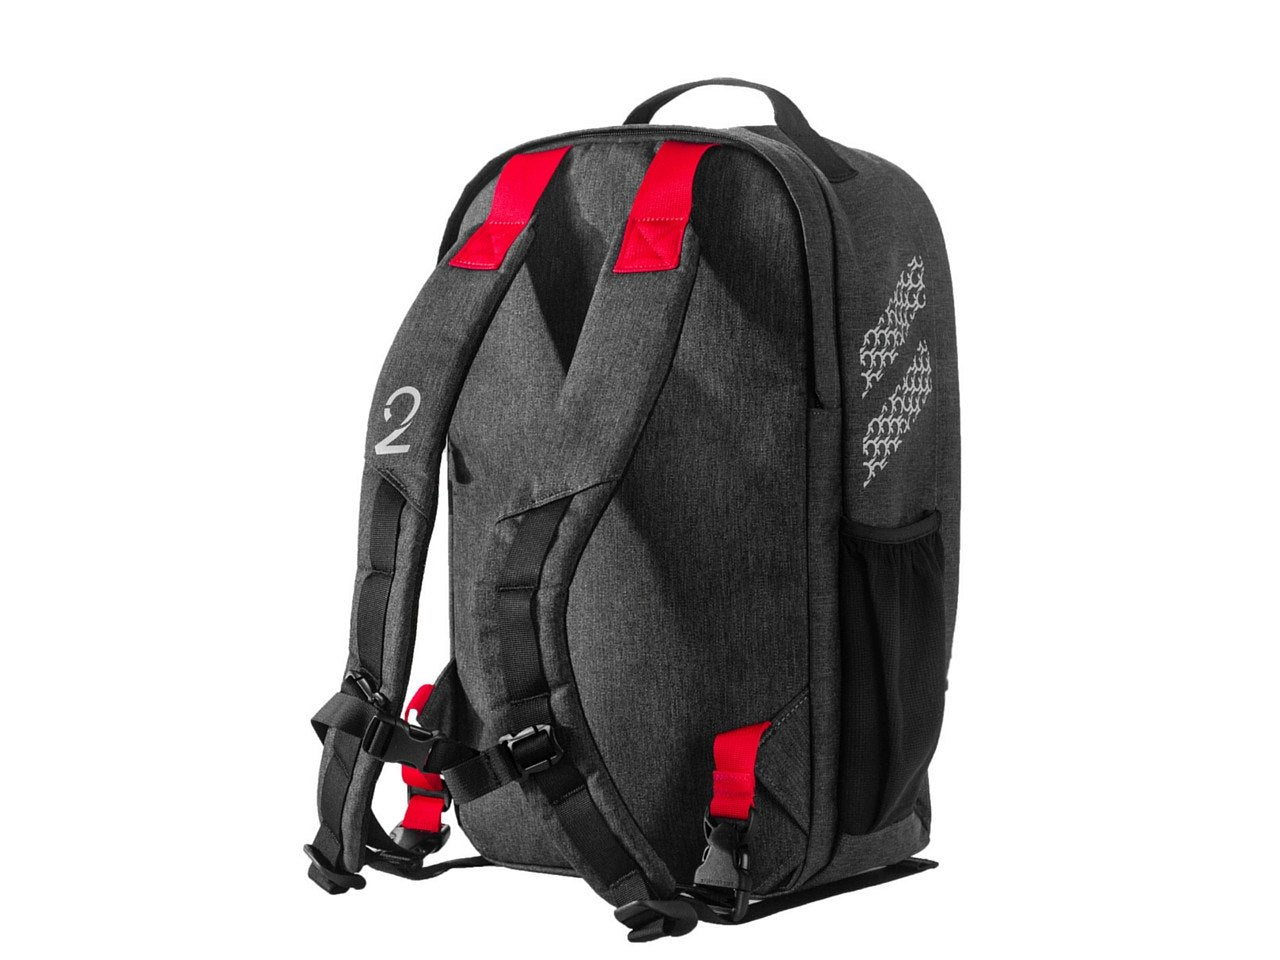 Pannier Backpack Convertible - Graphite , Bags - Two Wheel Gear, Two Wheel Gear - 2